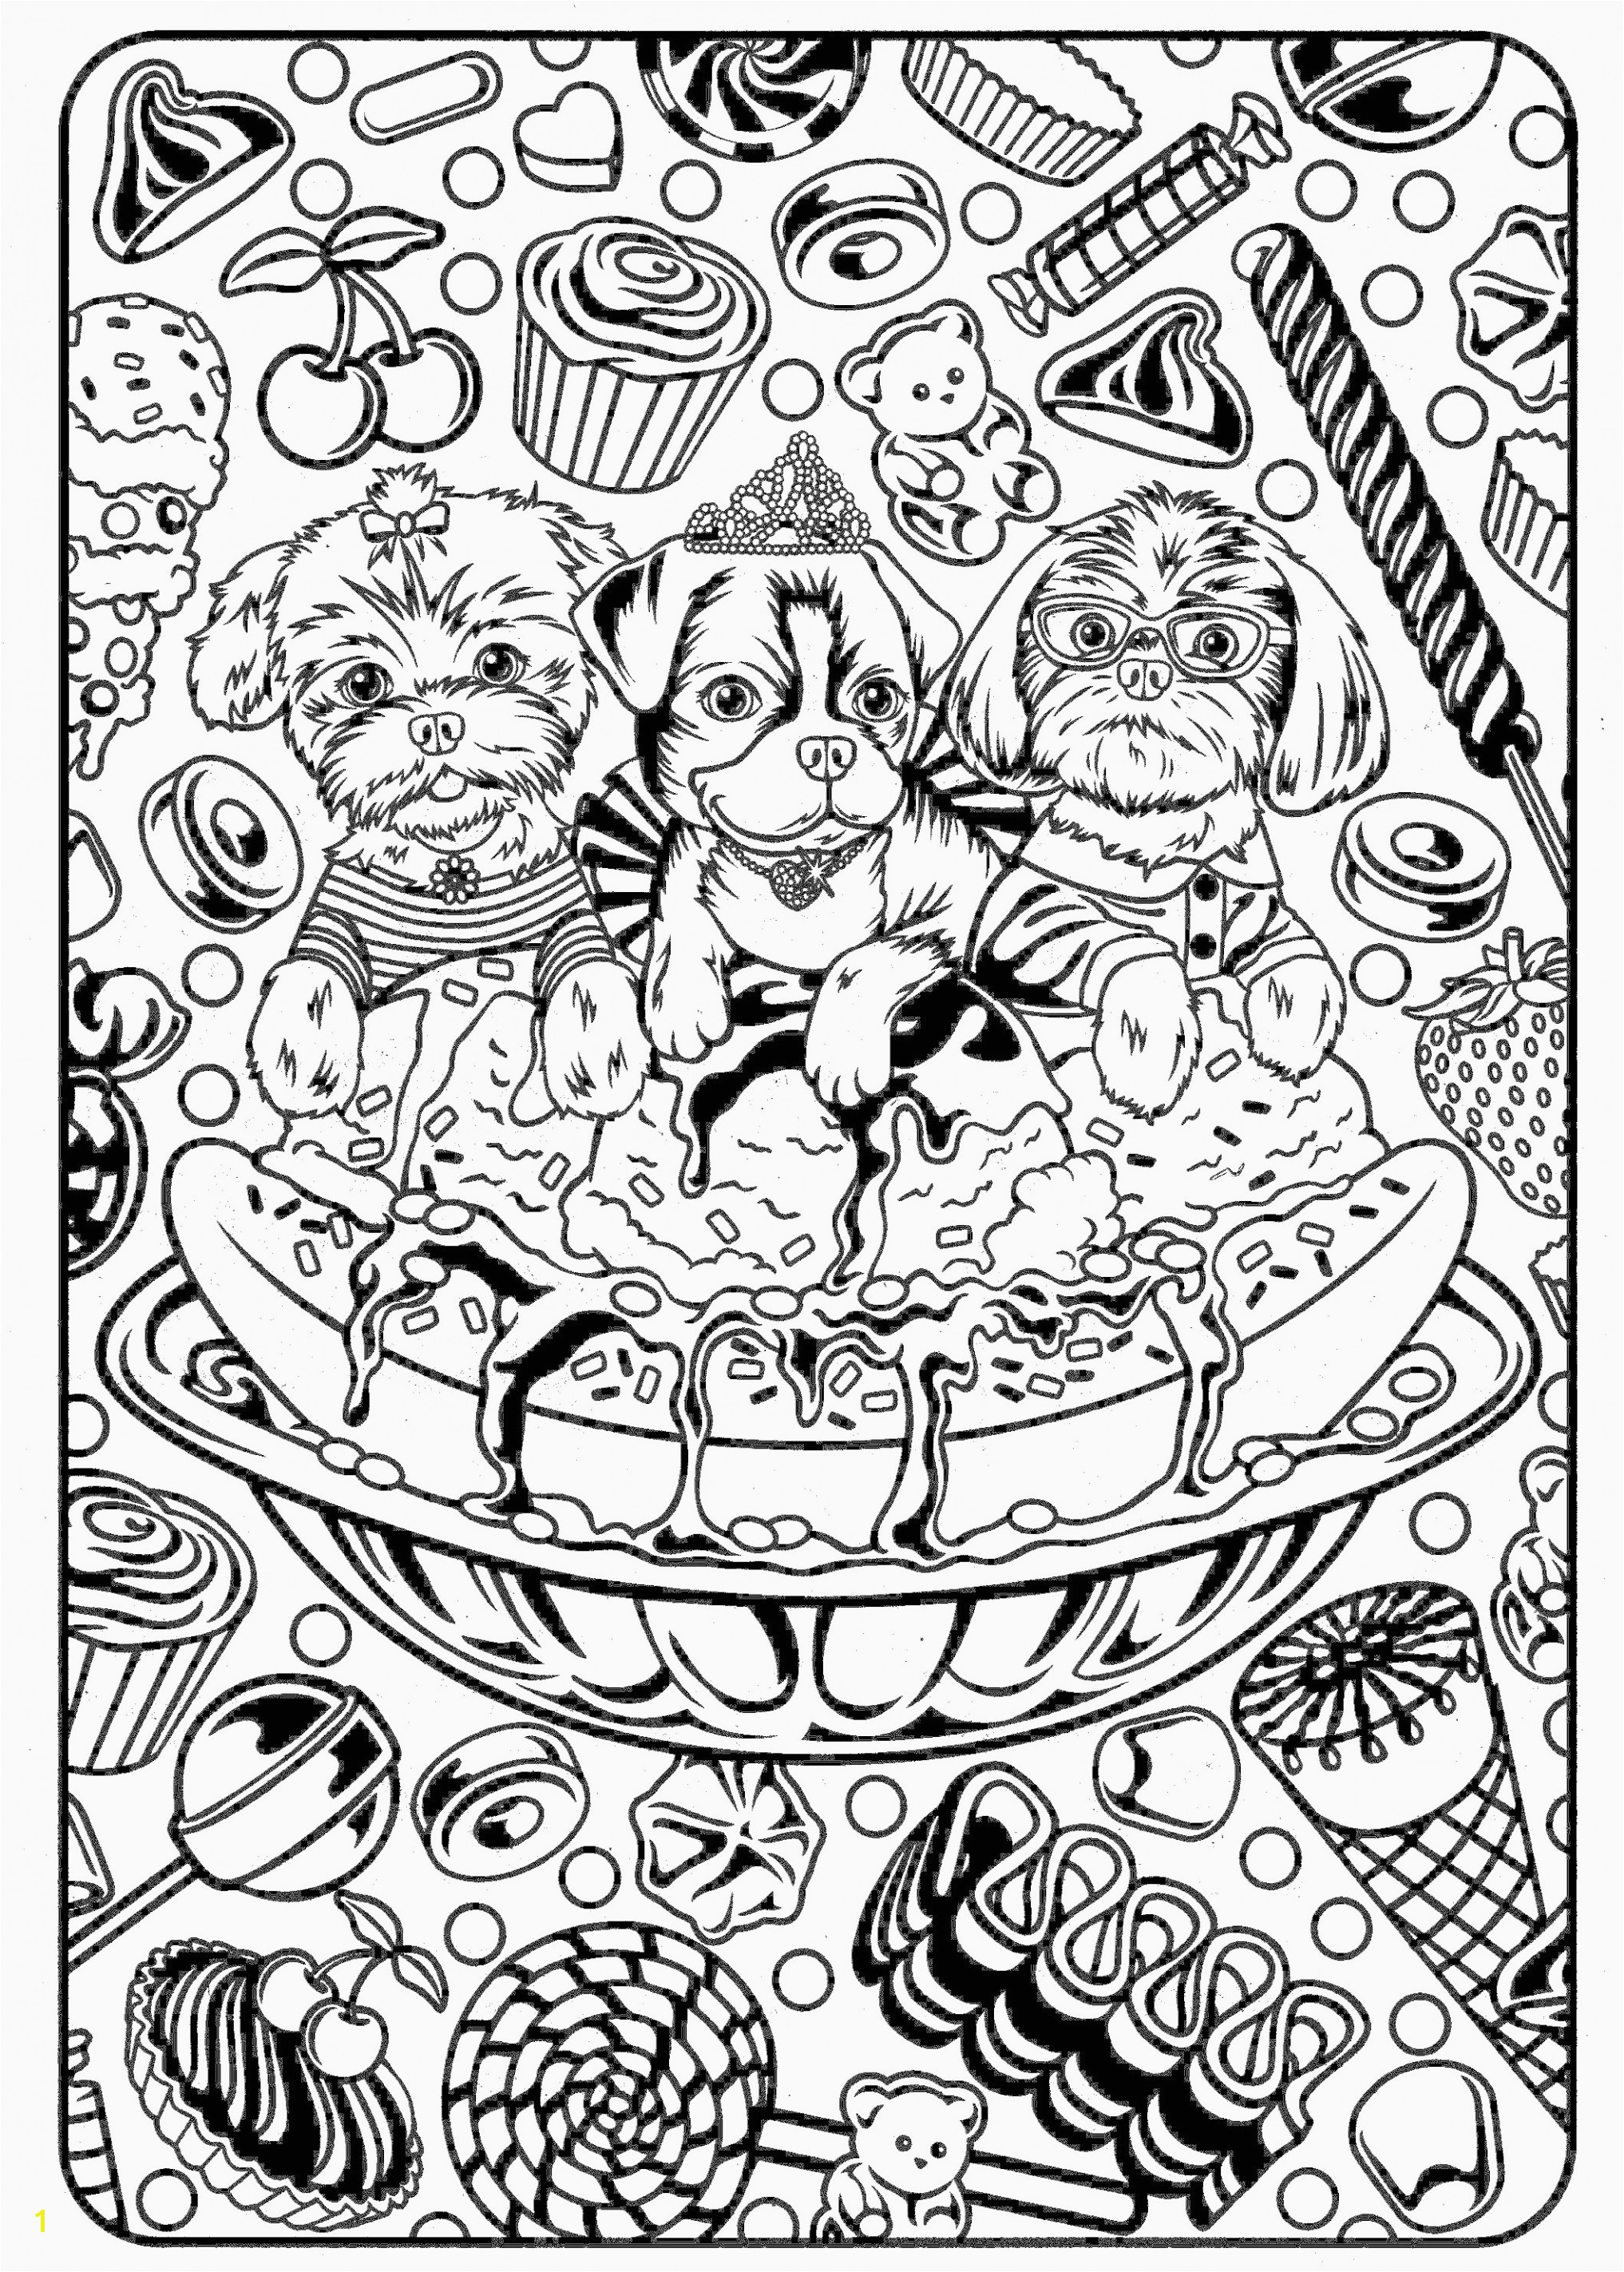 Disney Halloween Coloring Pages Printable Disney Halloween Coloring Sheets Printable Home Coloring Pages Best